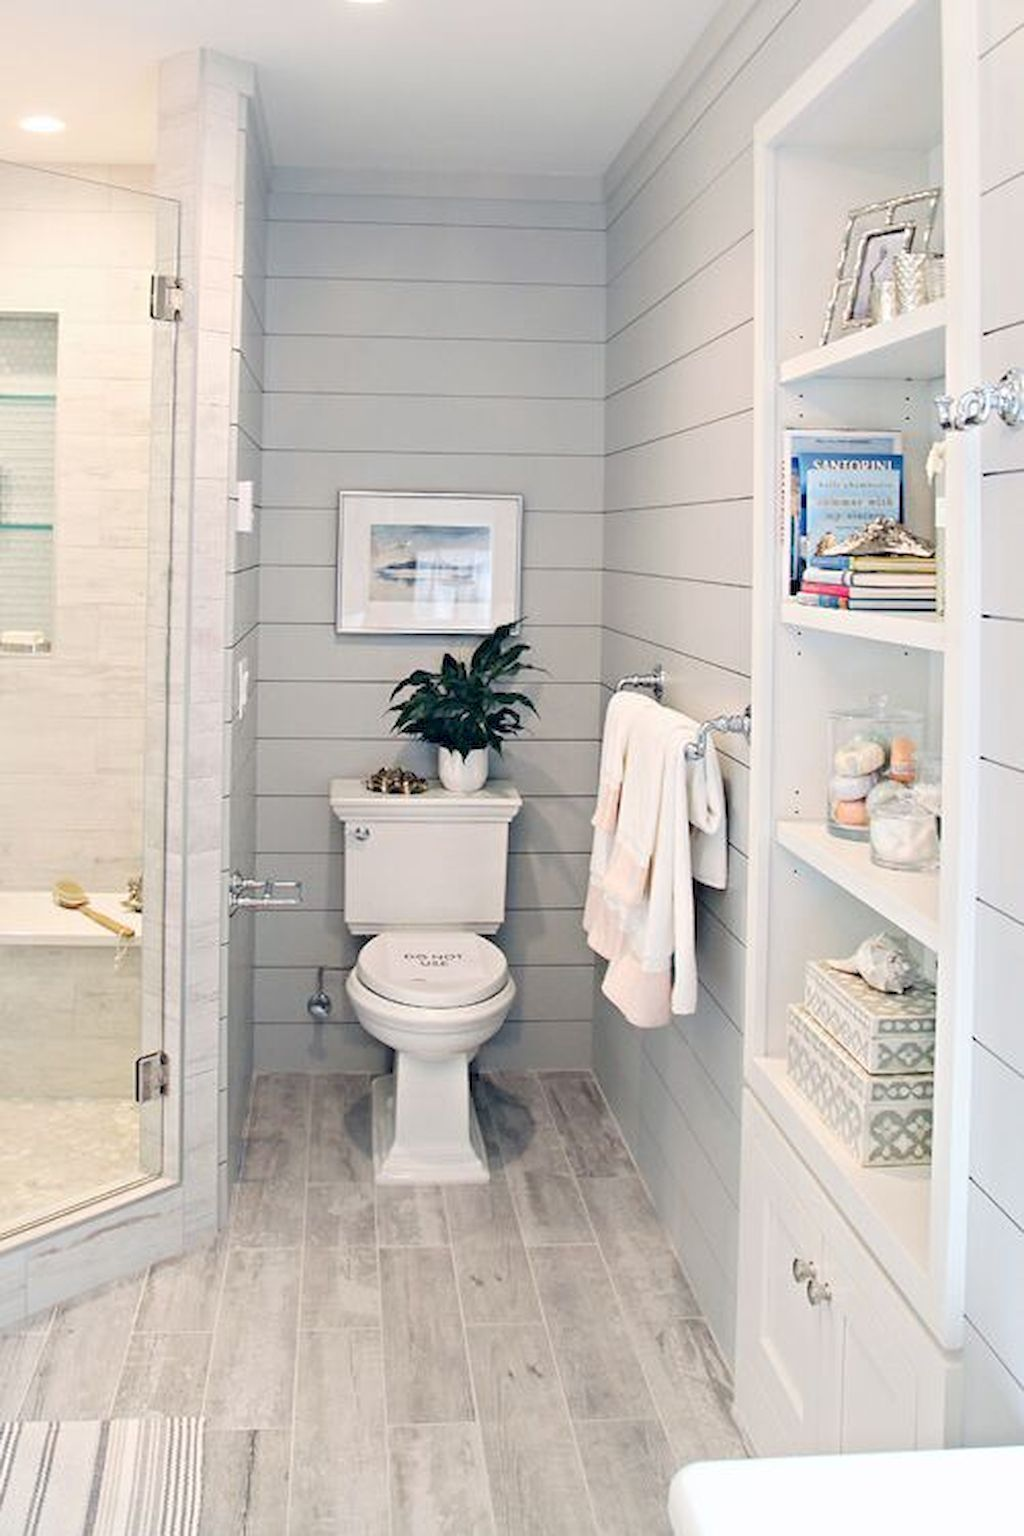 Awesome 55 Cool Small Bathroom Remodel Ideas Httpsdecorecor Enchanting Remodeling Ideas For Small Bathrooms Inspiration